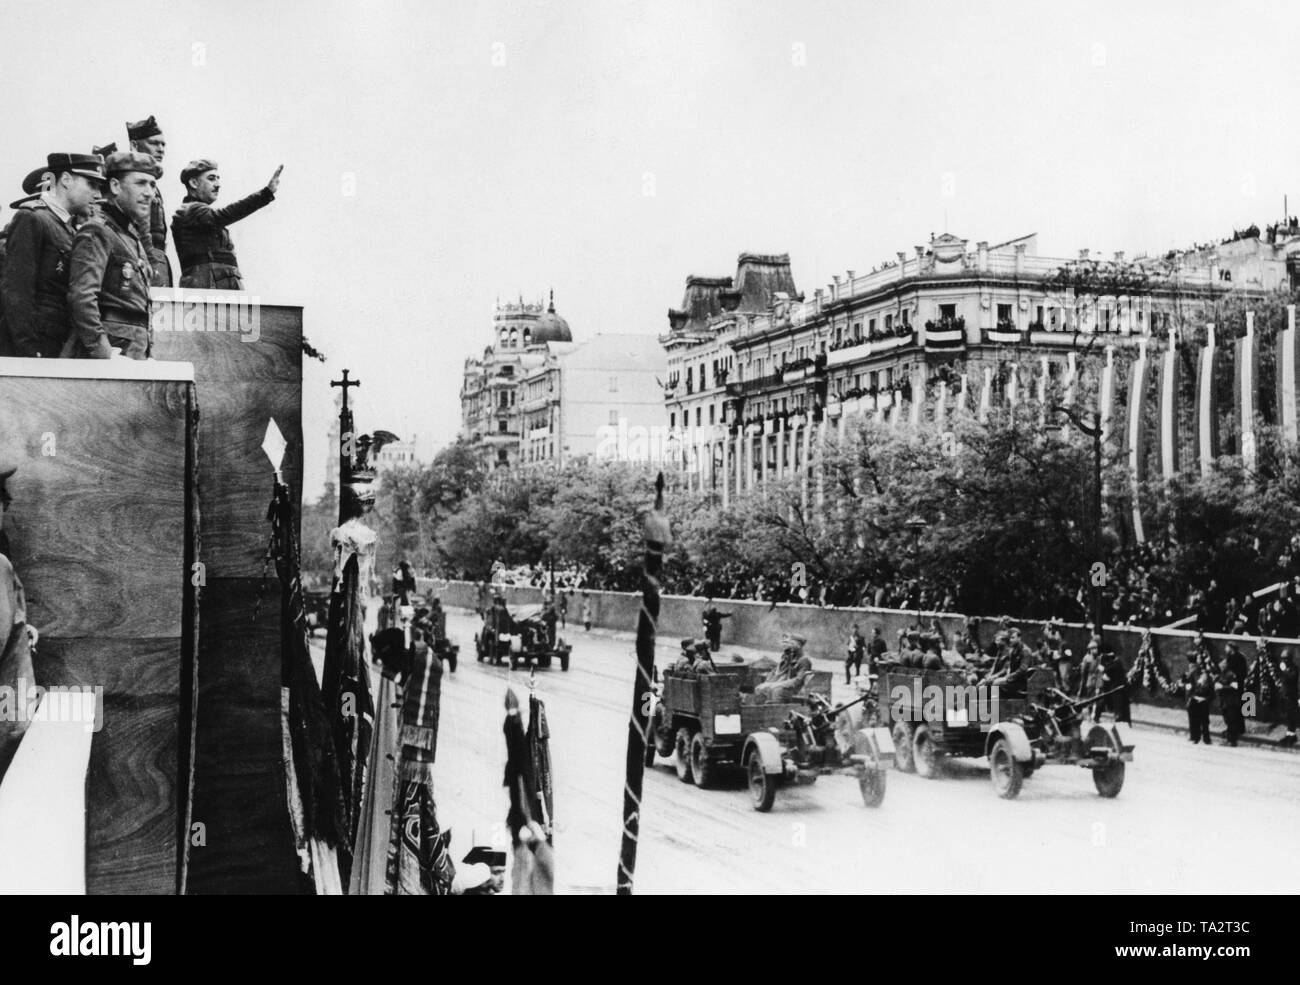 Photo of the luxury district of Paseo del la Castellana in Madrid during the great victory parade of the Spanish national troops in Madrid on May 19, 1939. On the left in the edge of the photo,the Caudilo General Francisco Franco (on the right with his arm raised) and major general Freiherr Wolfram von Richthofen along with other high officers are inspecting the parade from a stage. On the right, an anti-aircraft unit defiles (Krupp L2 H143 tractor with 2cm flak 30). - Stock Image